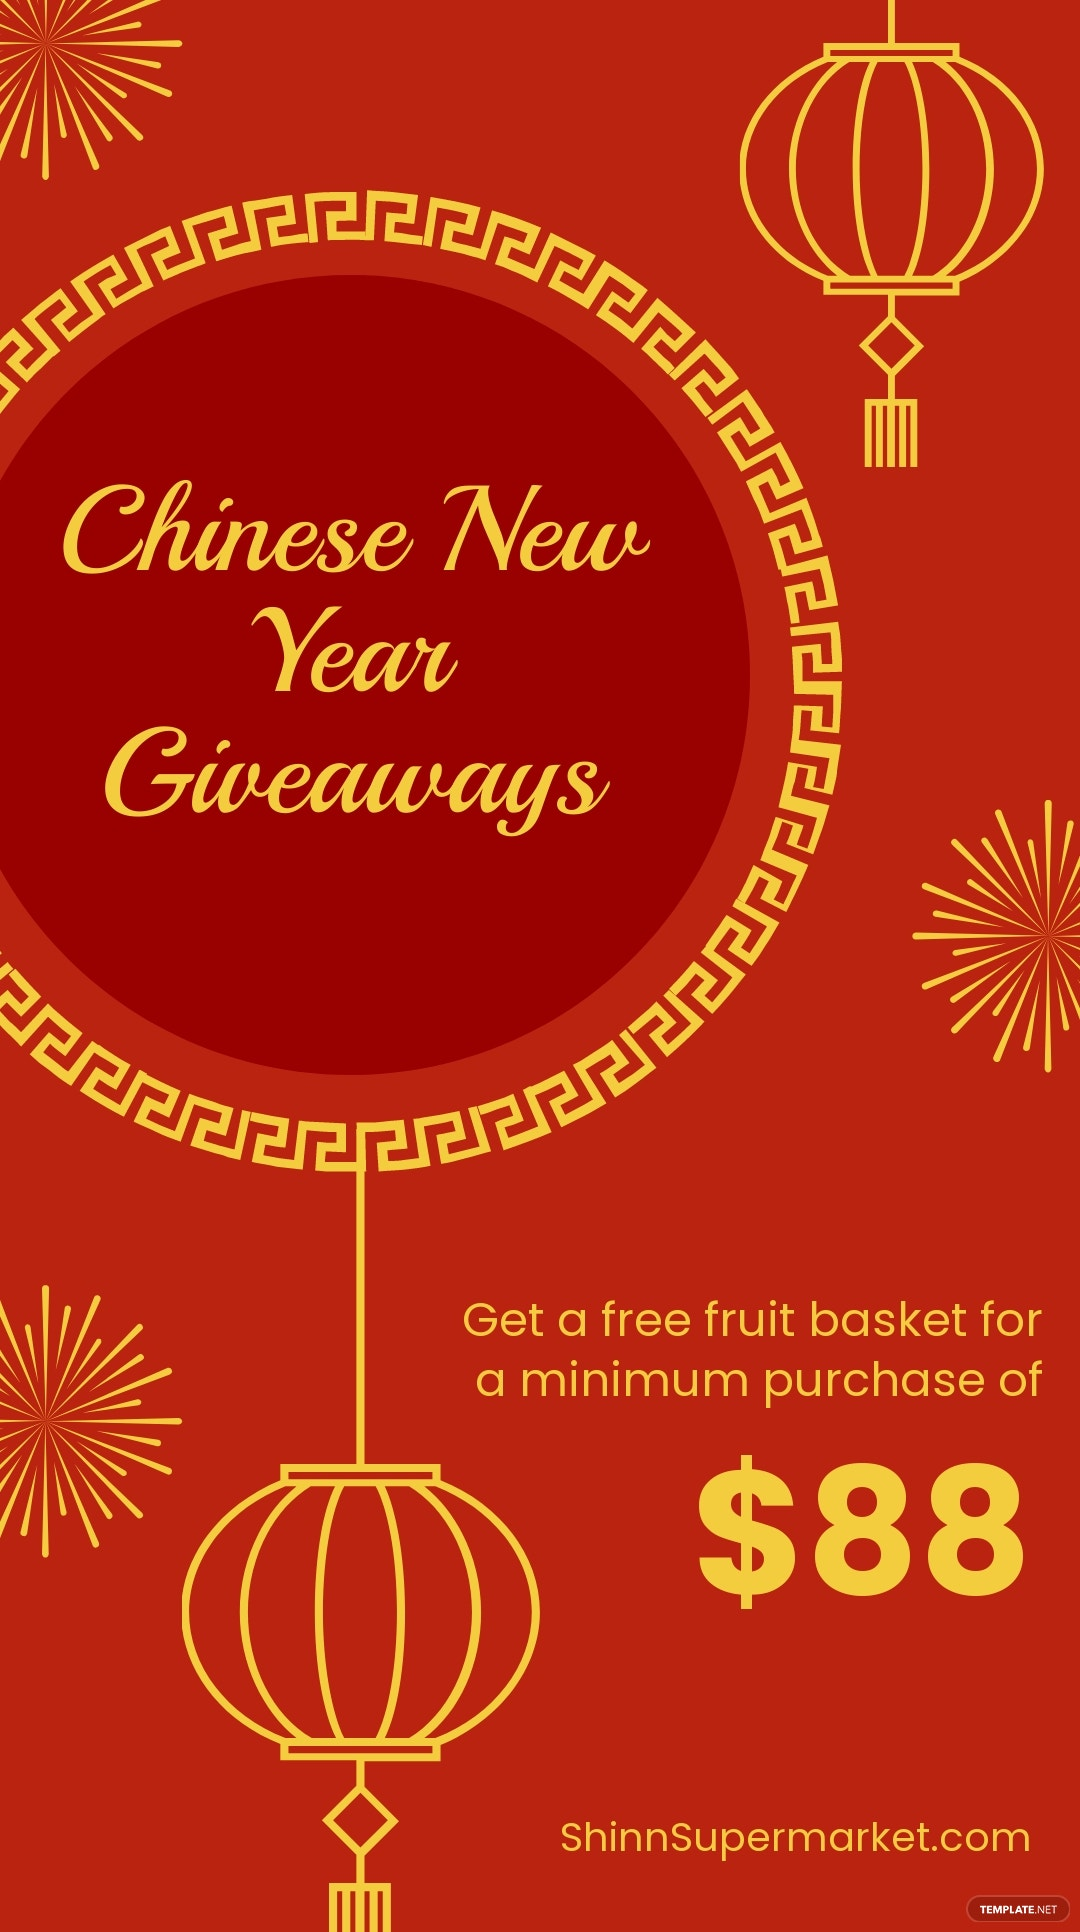 Chinese New Year Giveaway Whatsapp Post Template.jpe